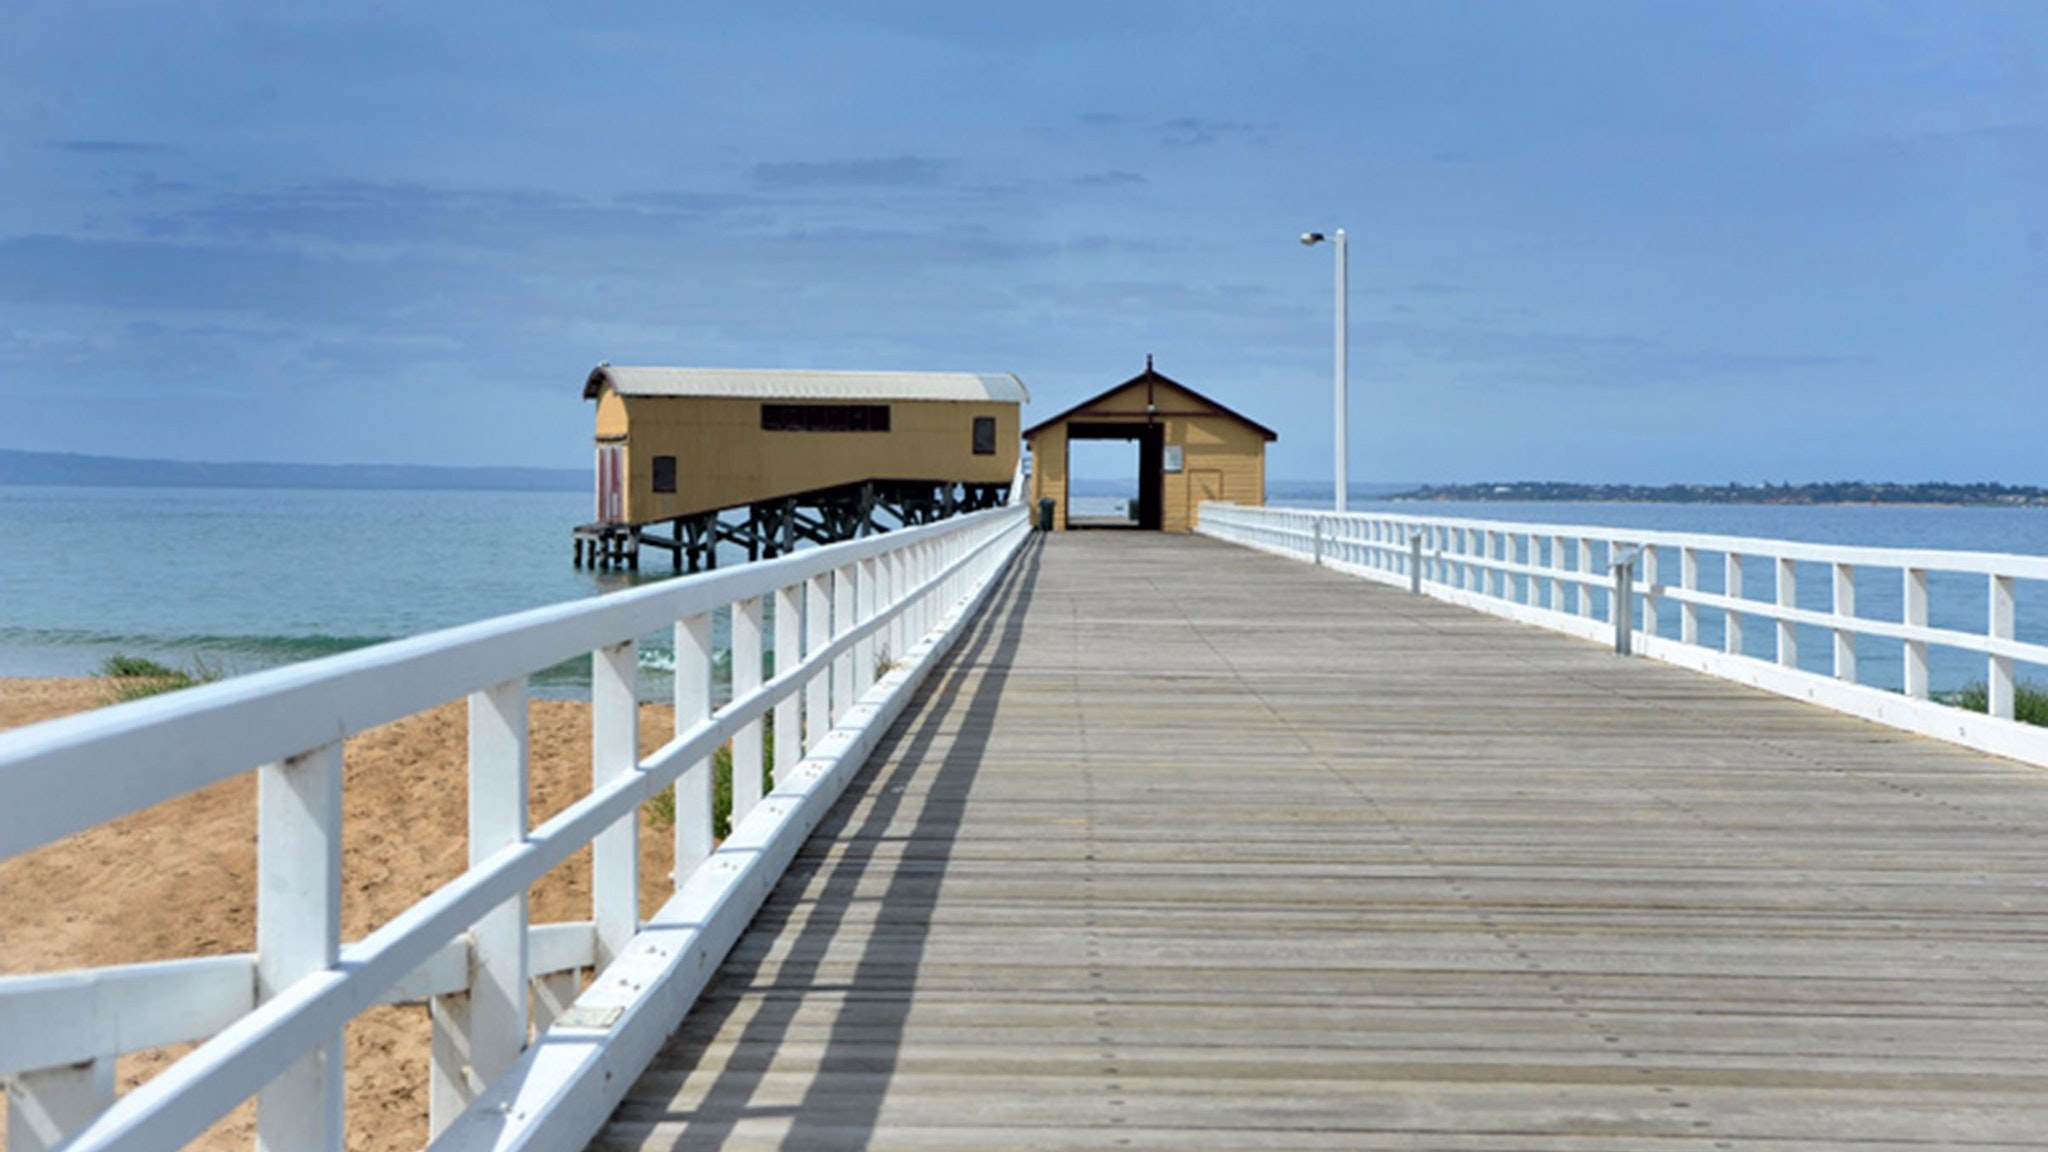 Queenscliff pier and waterfront accross the road from Clydesville